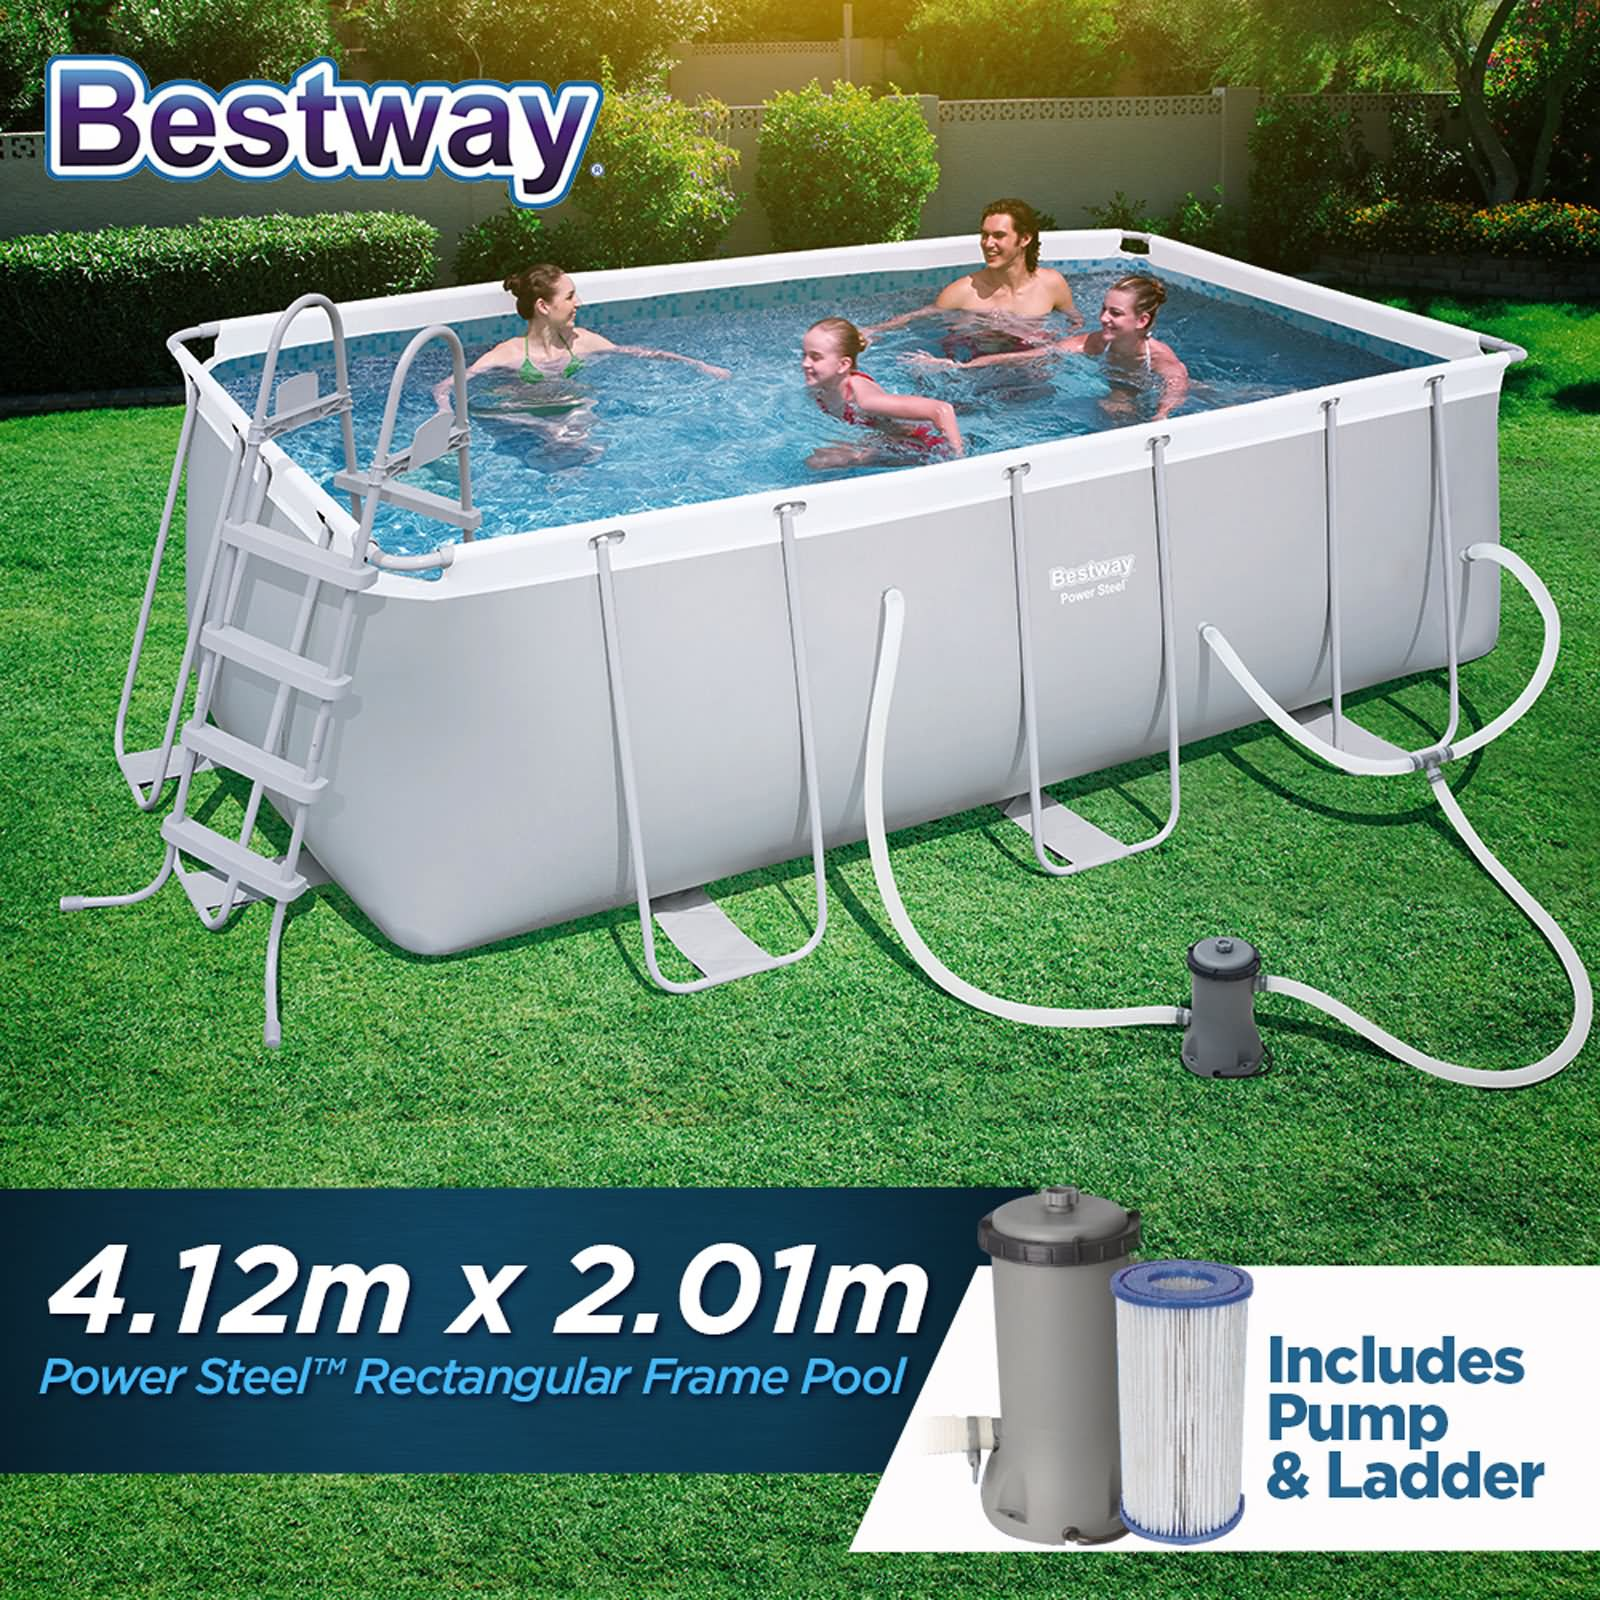 Frame Pool Bestway Details About Bestway Above Ground Swimming Pool Power Steel Rectangular Frame 4 12m X 2 01m